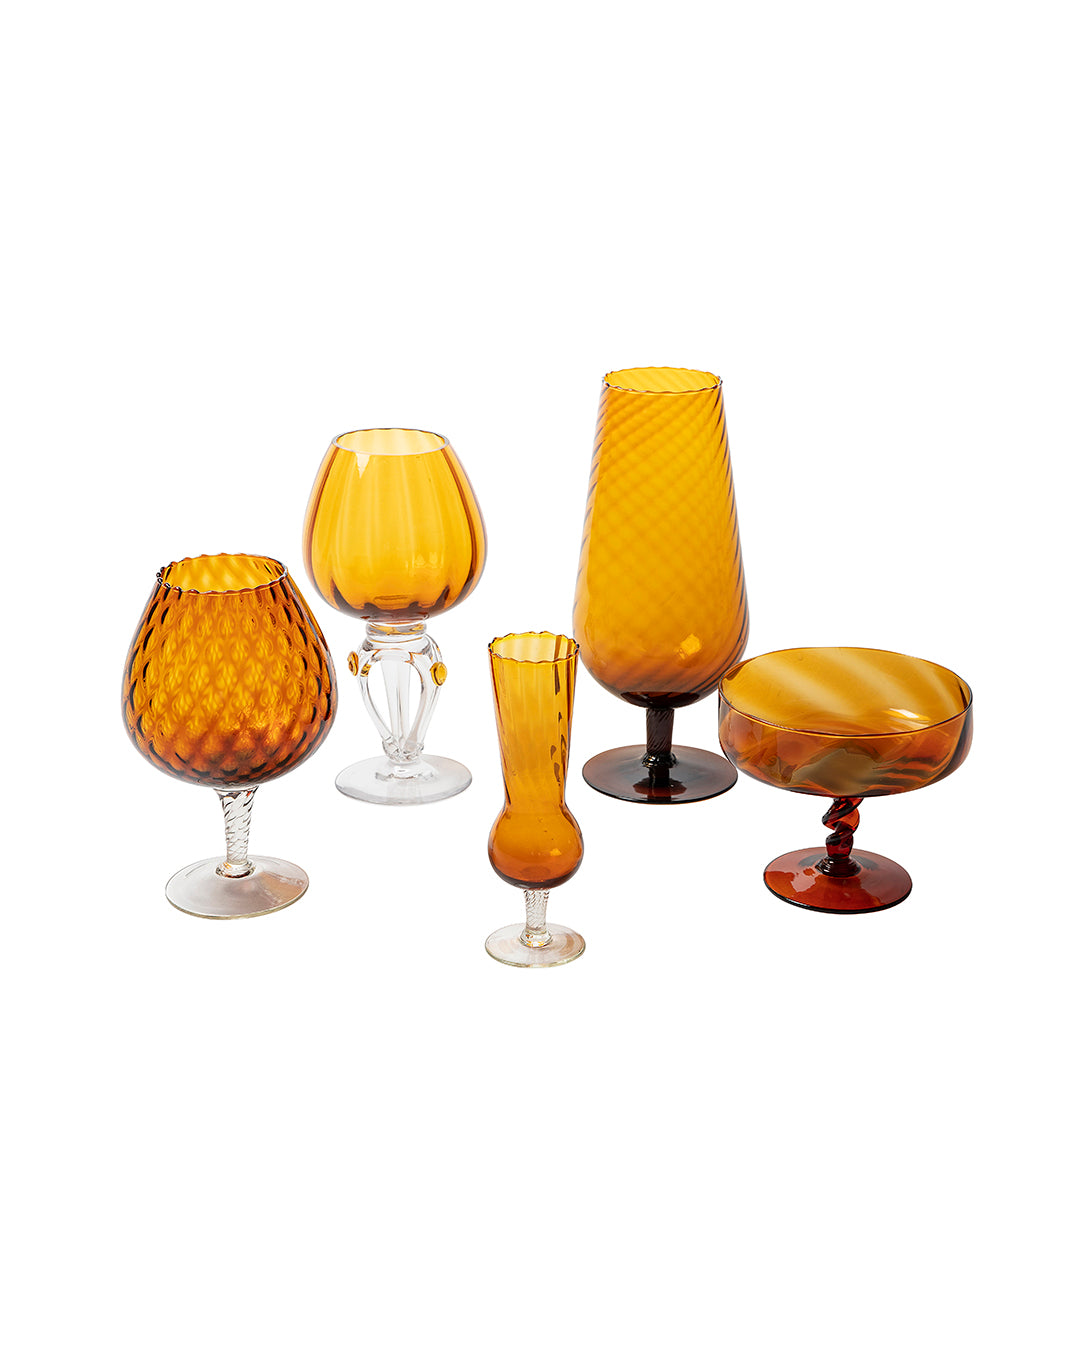 Set of five amber colored vases and cups made of glass